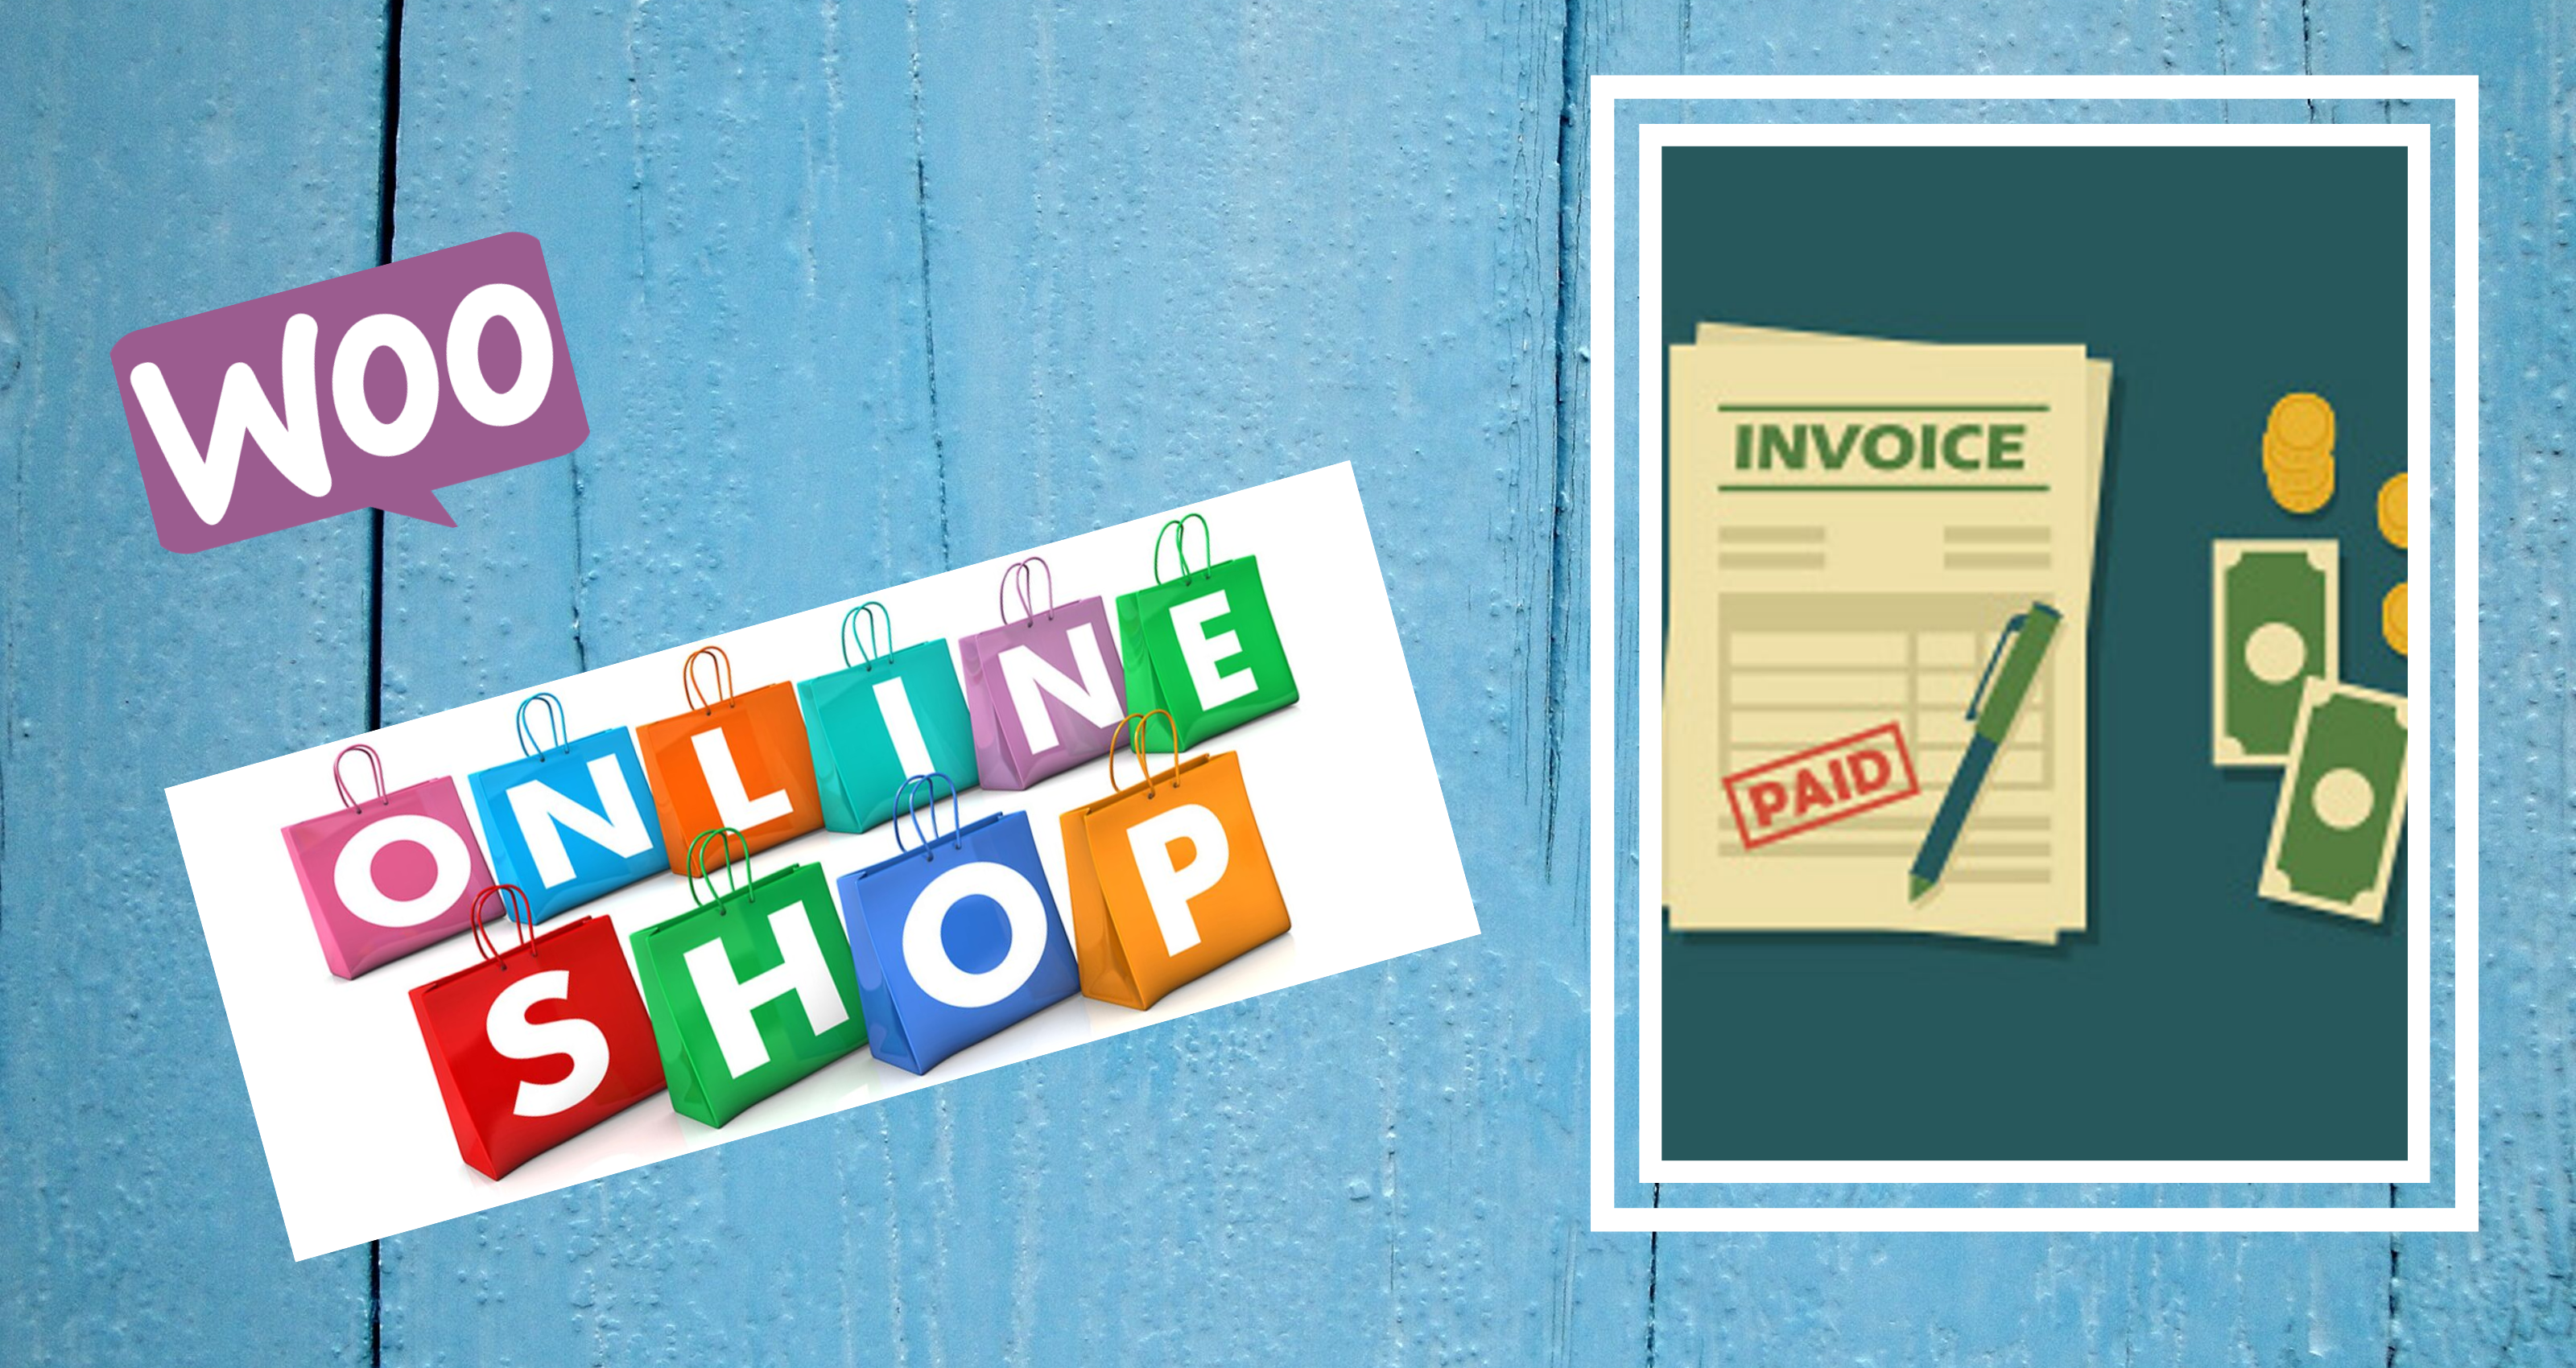 How can we customize WooCommerce invoice